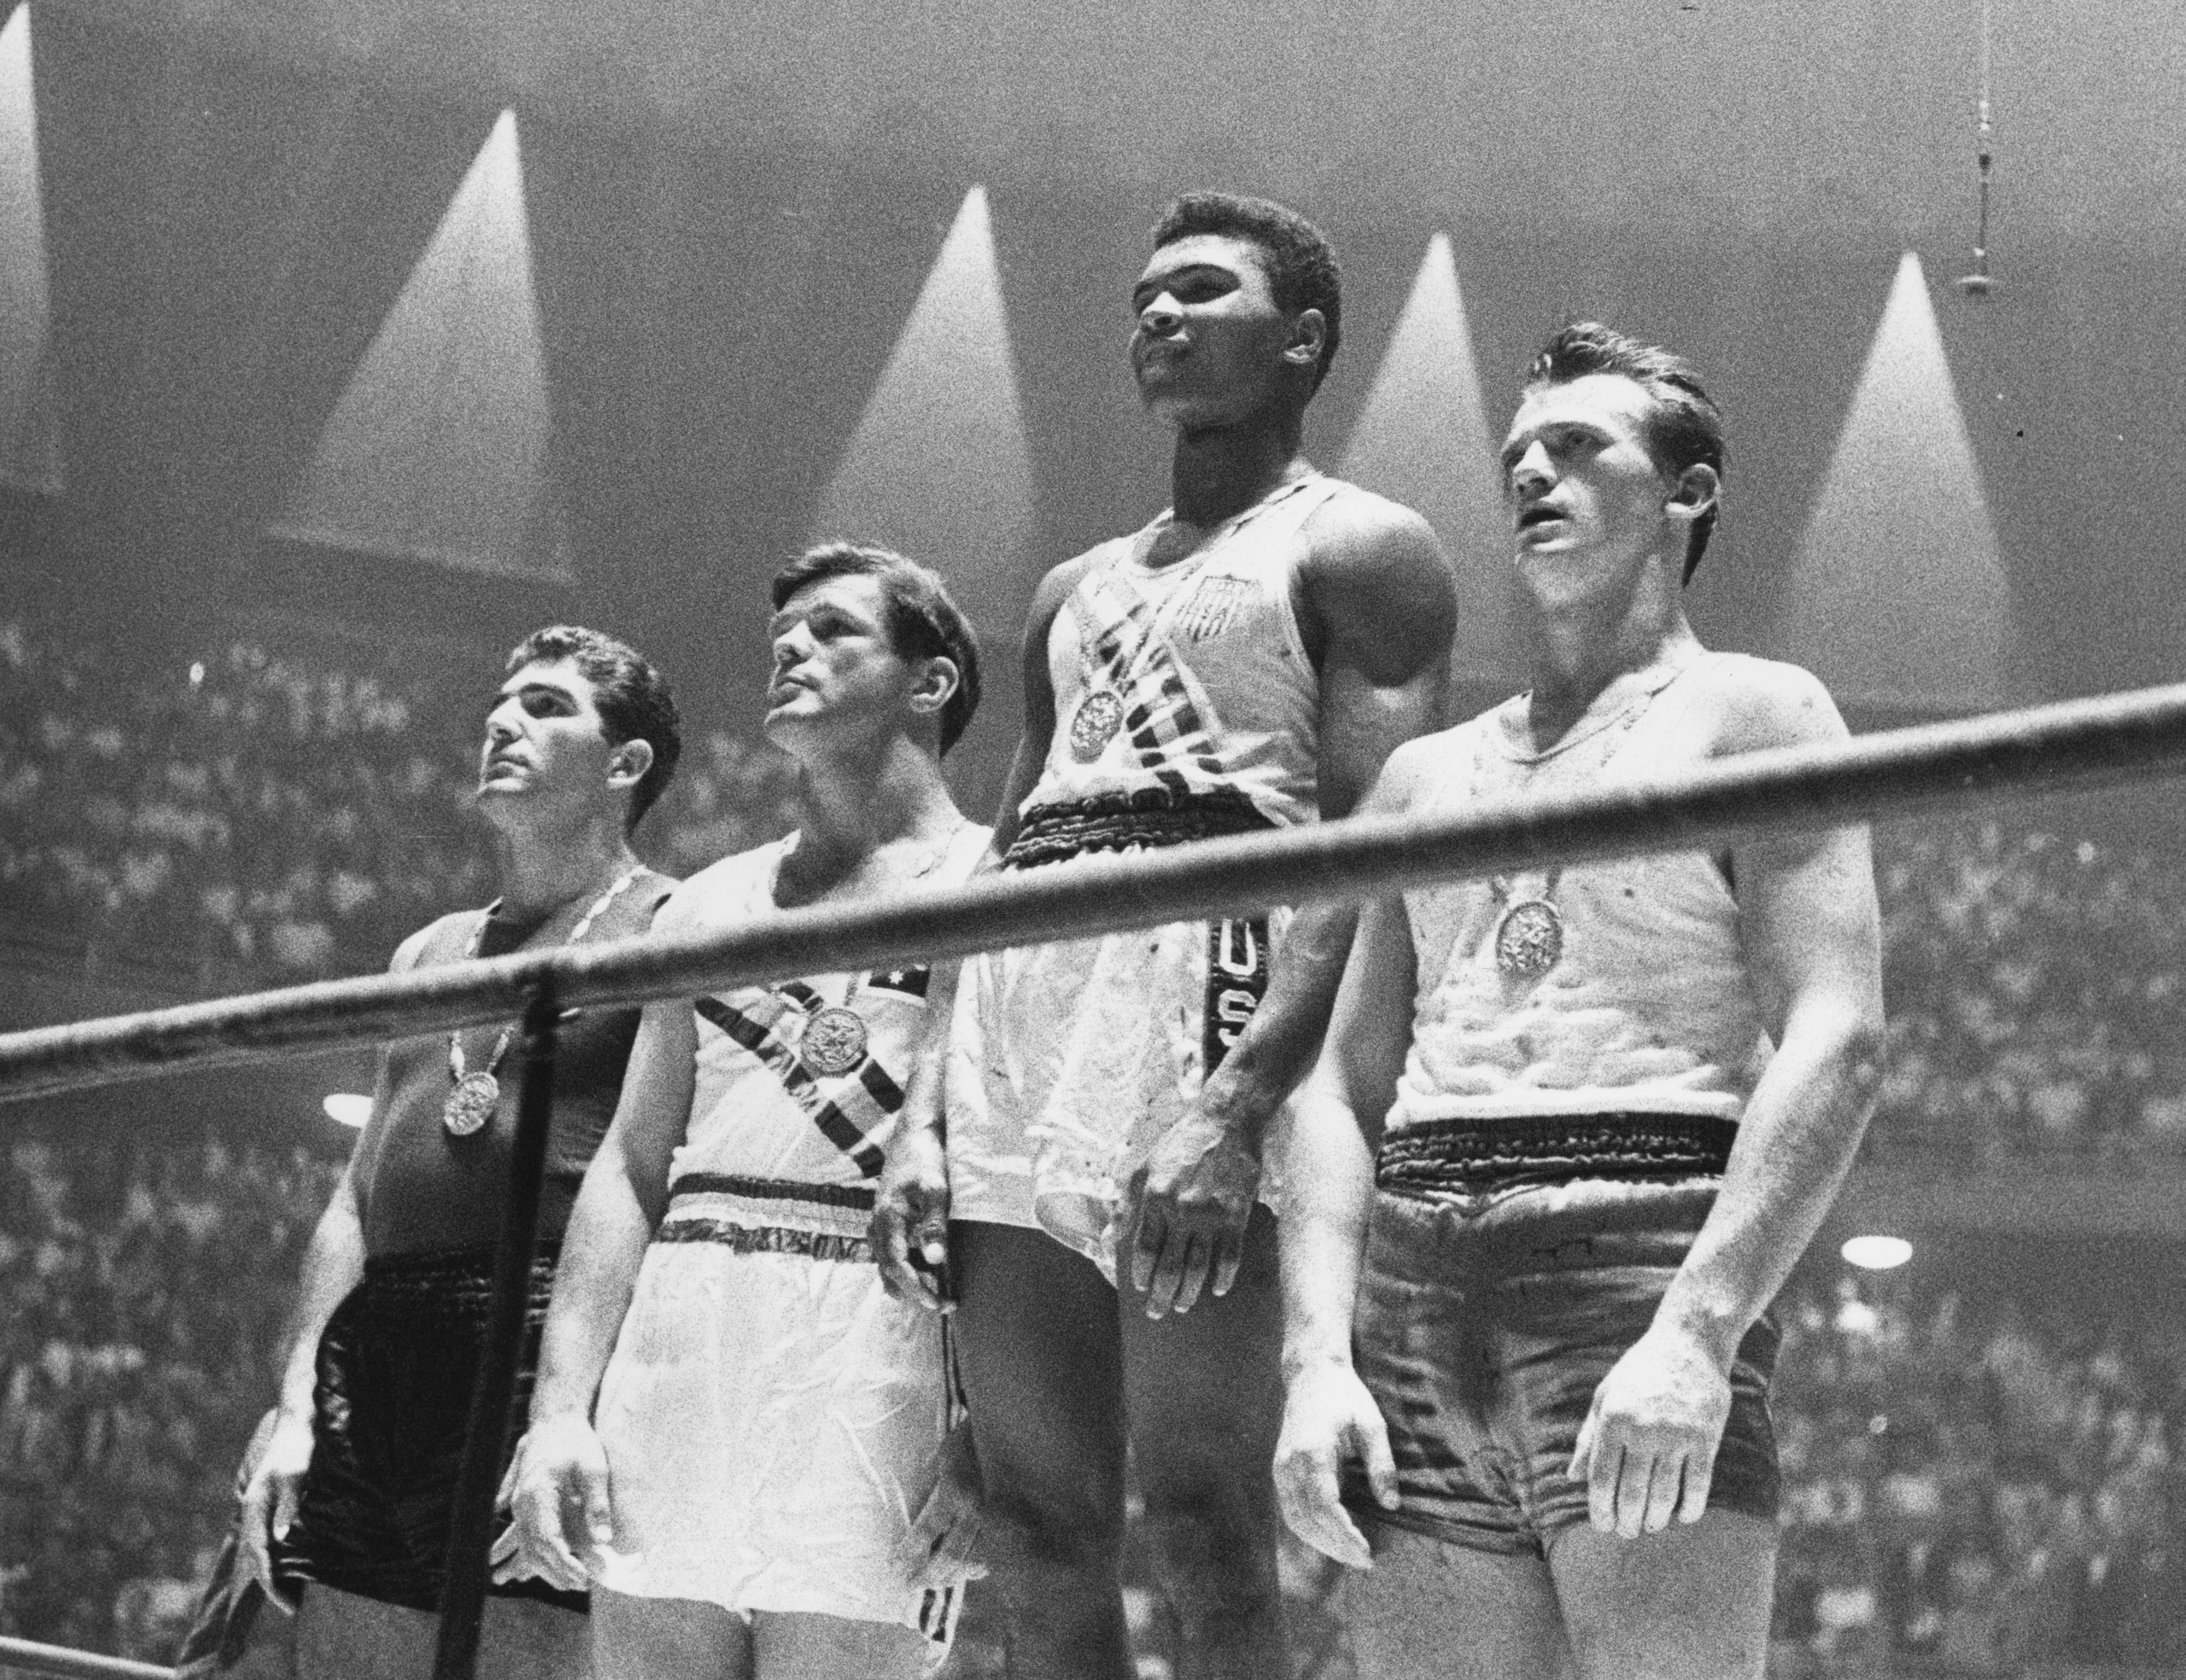 The winners of the 1960 Olympic medals for light heavyweight boxing on the winners' podium in Rome: Cassius Clay (center), gold; Zbigniew Pietrzykowski of Poland (right), silver; and Giulio Saraudi (Italy) and Anthony Madigan (Australia), joint bronze.